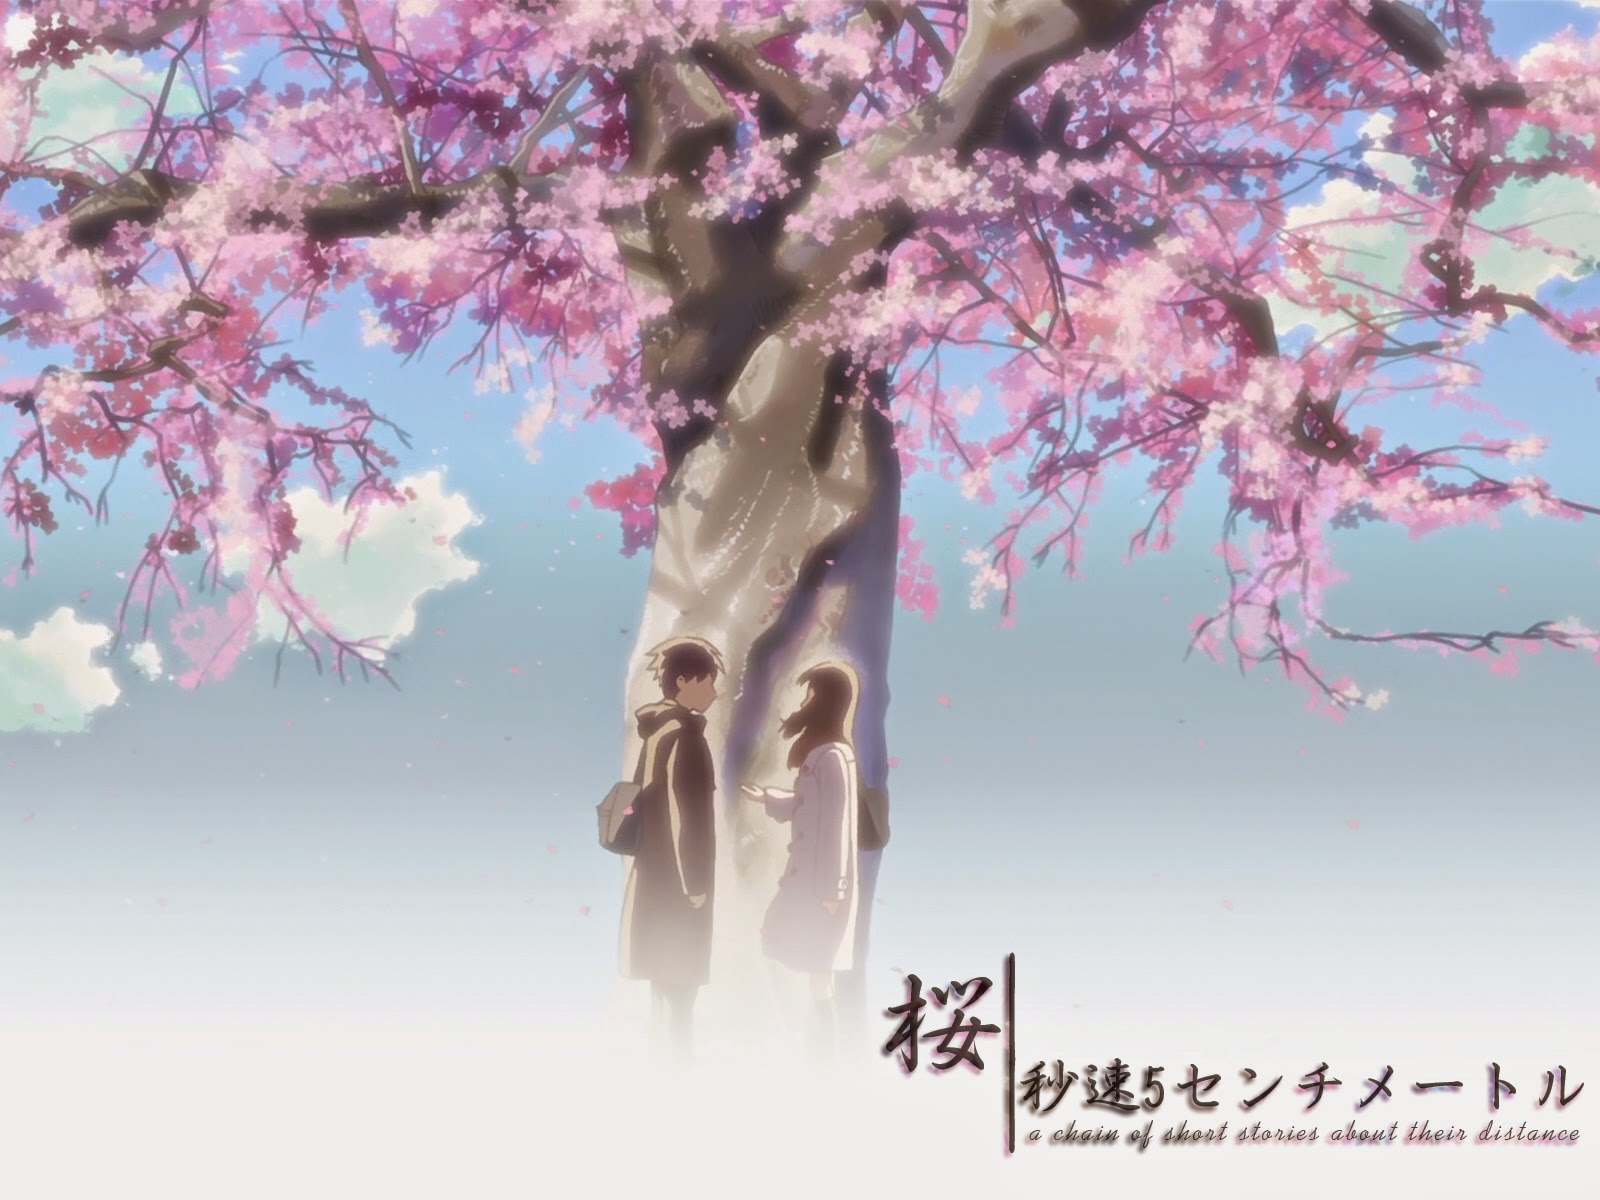 anime tersedih 5 centimeters per second